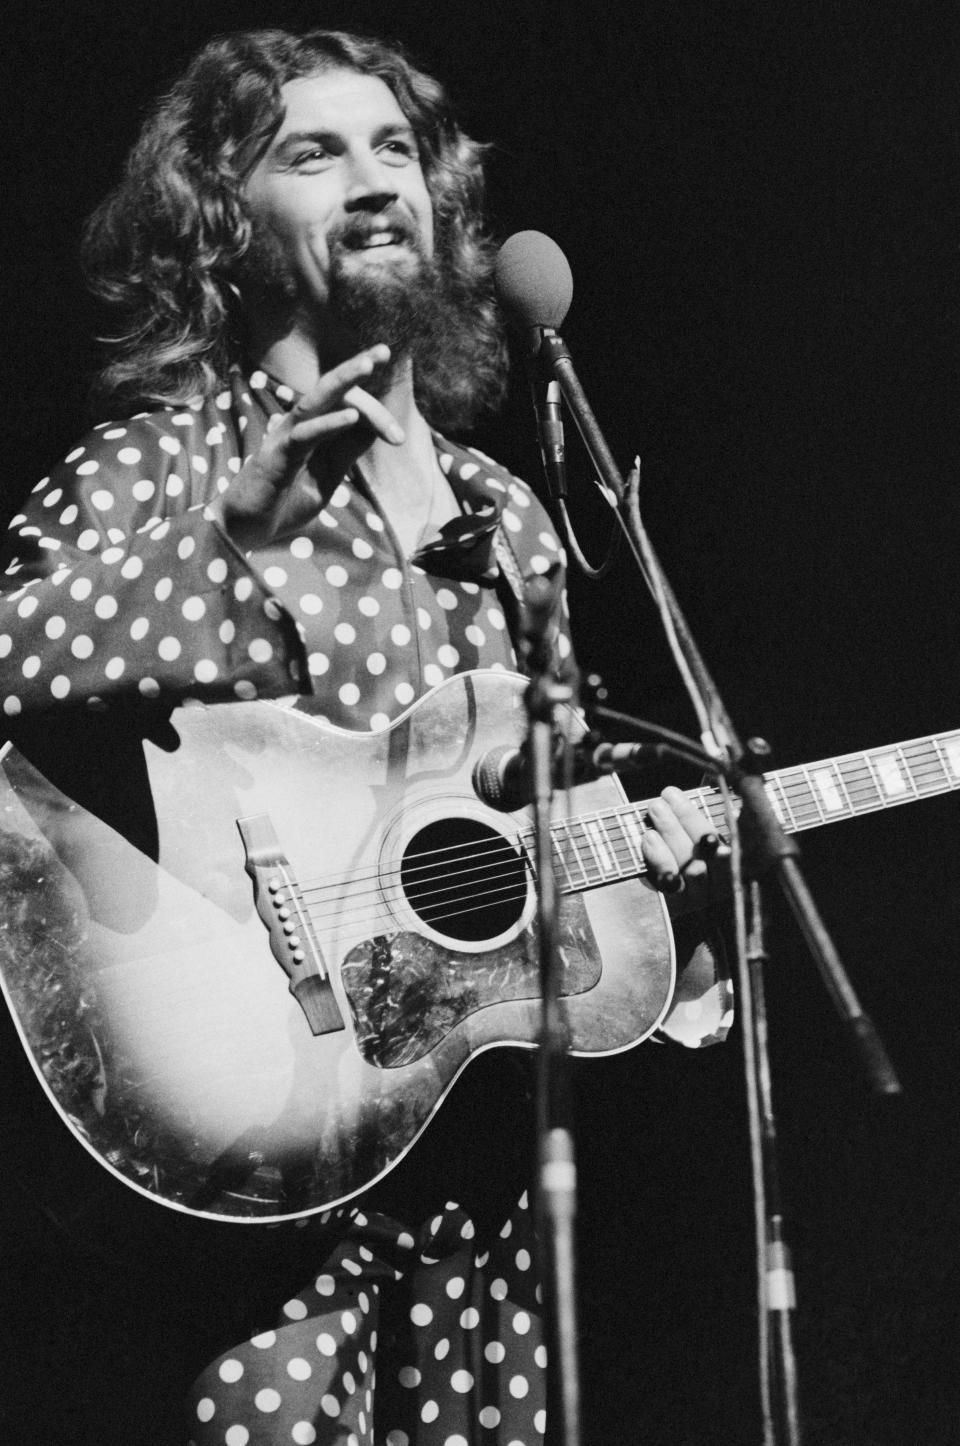 Scottish comedian and folk singer Billy Connolly performing at the New Victoria Theatre (now the Apollo Victoria Theatre), London, 15th October 1975. (Photo by Michael Putland/Getty Images)